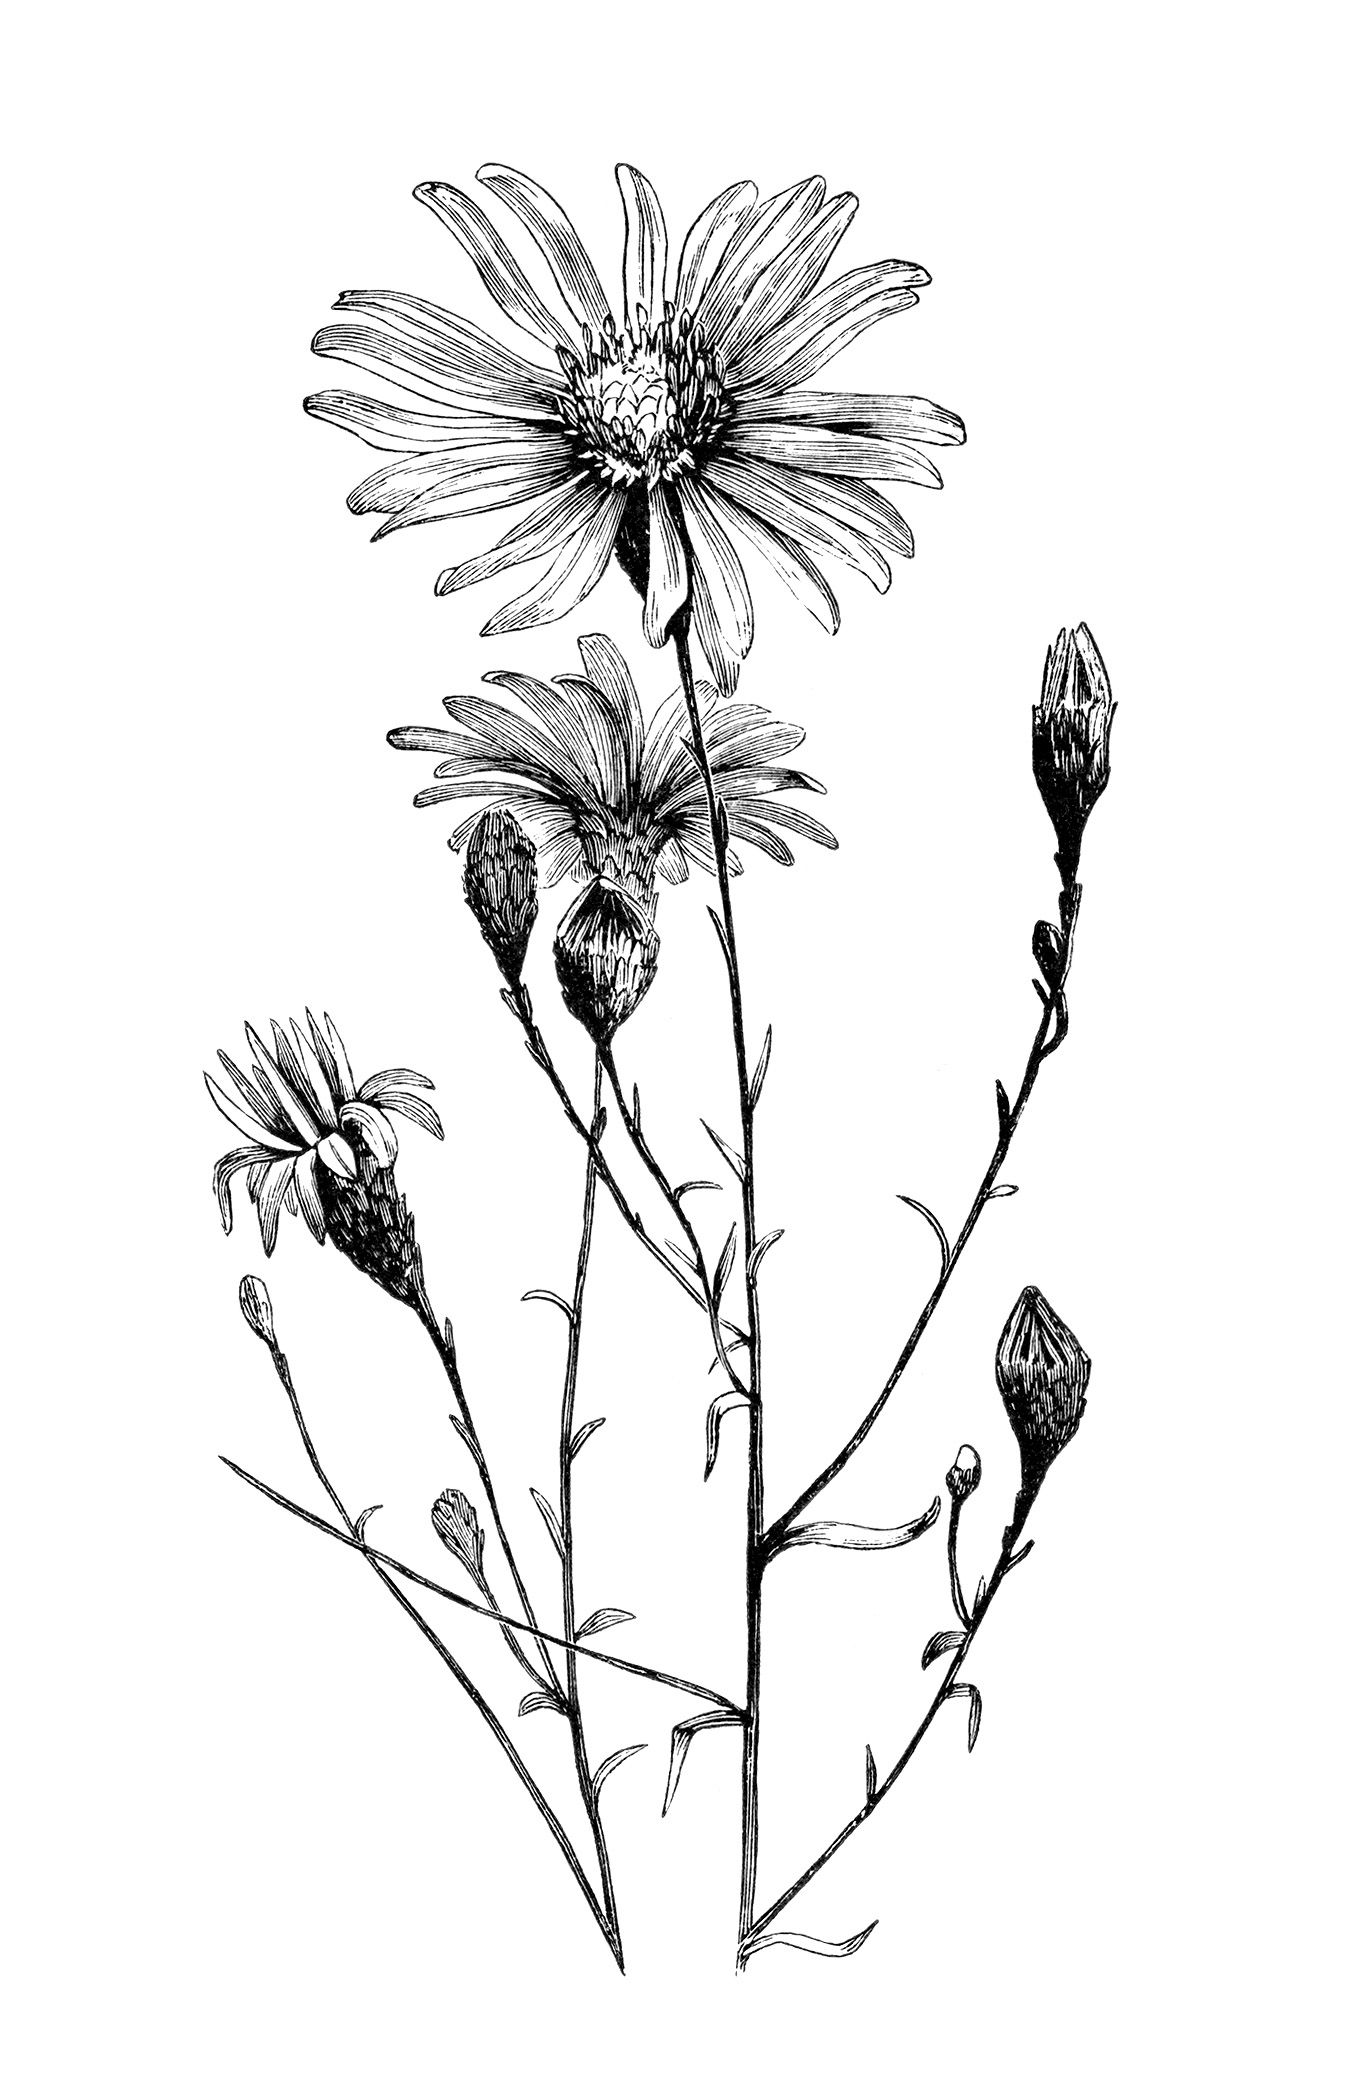 Botanical illustration black and white - photo#20